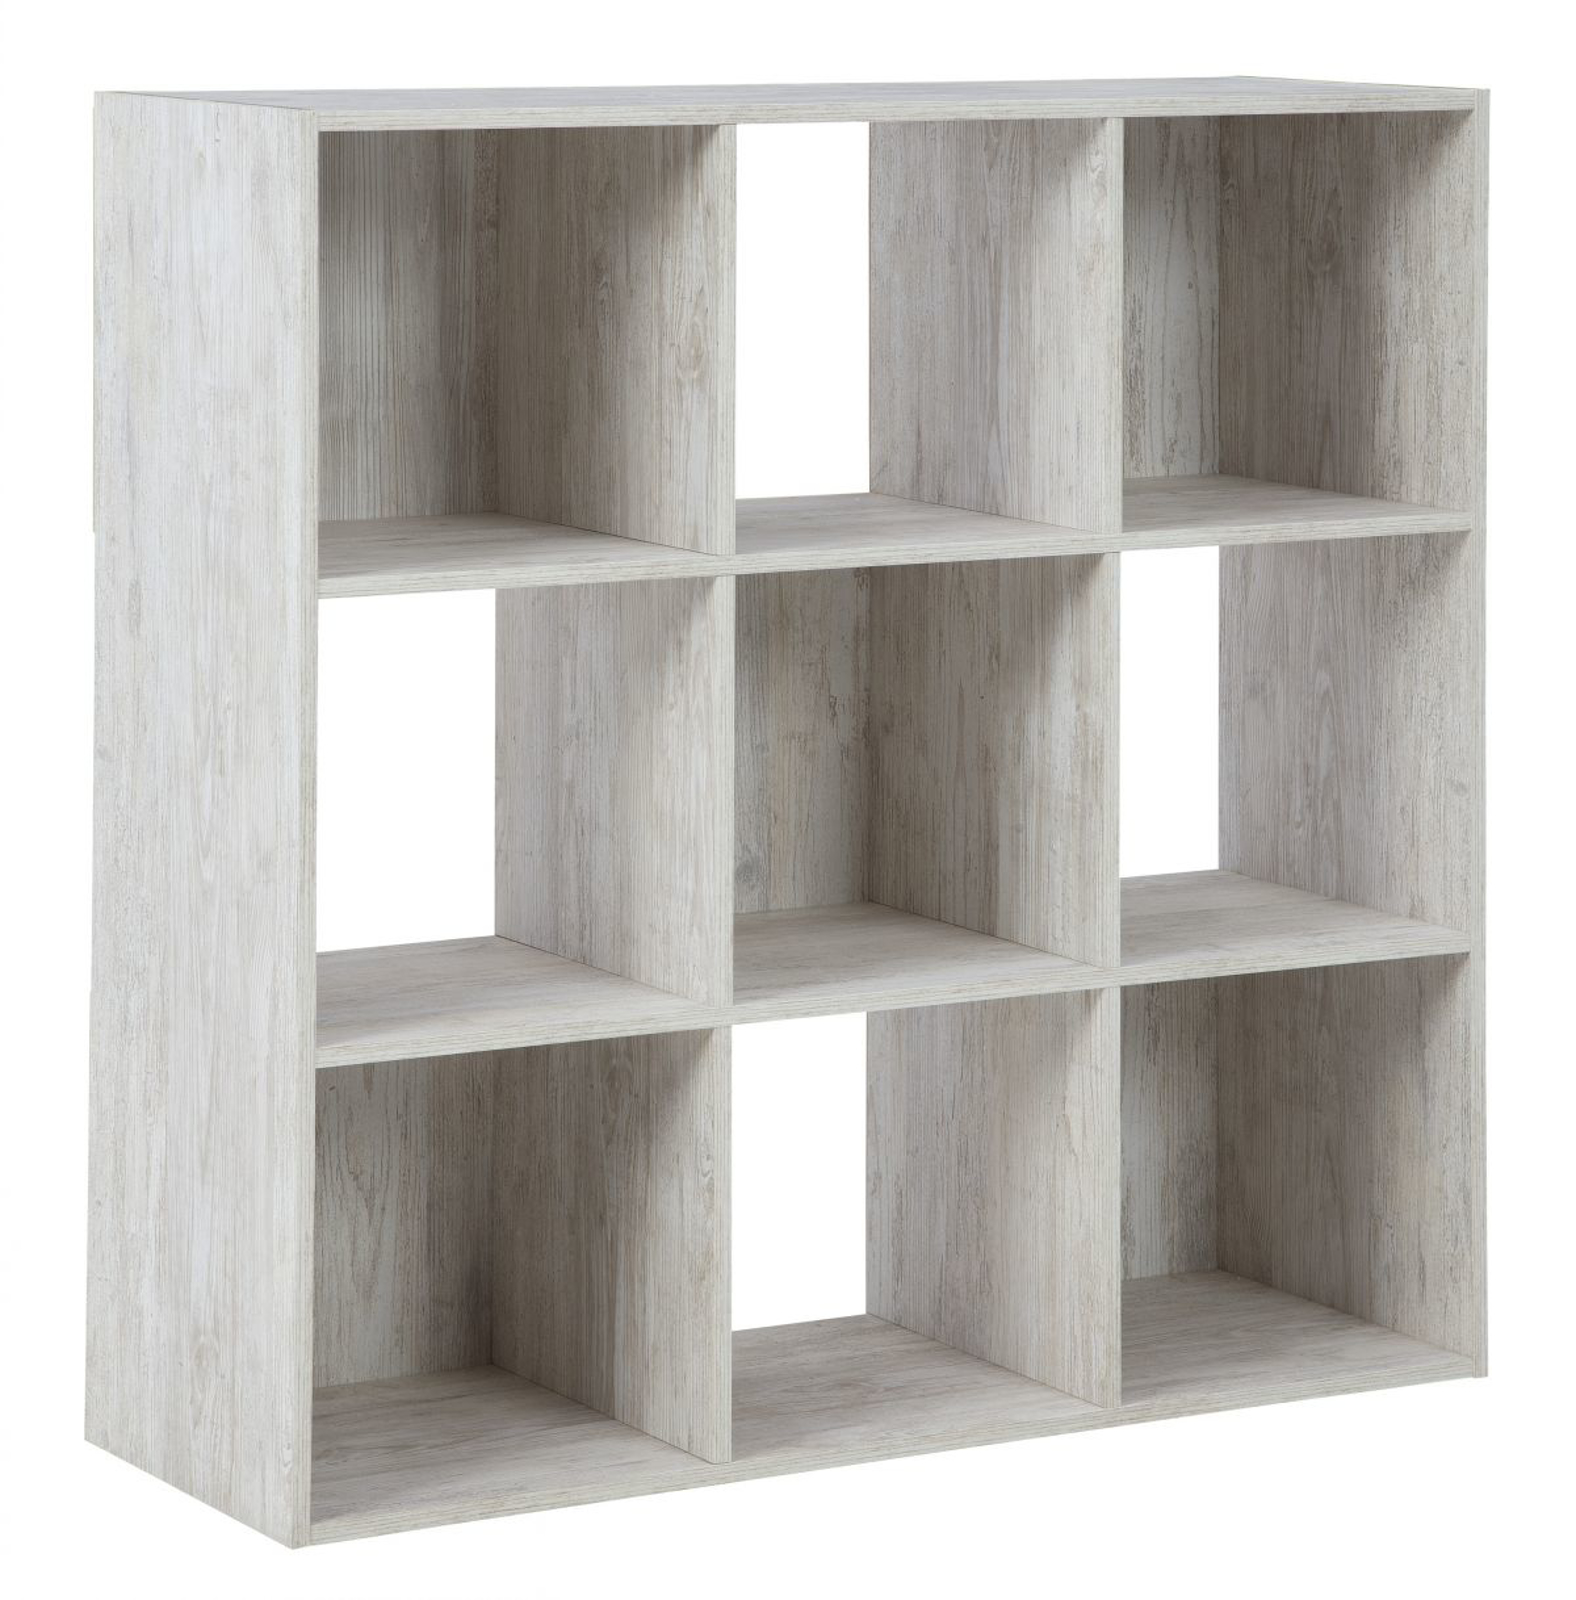 Picture of Paxberry Cube Organizer